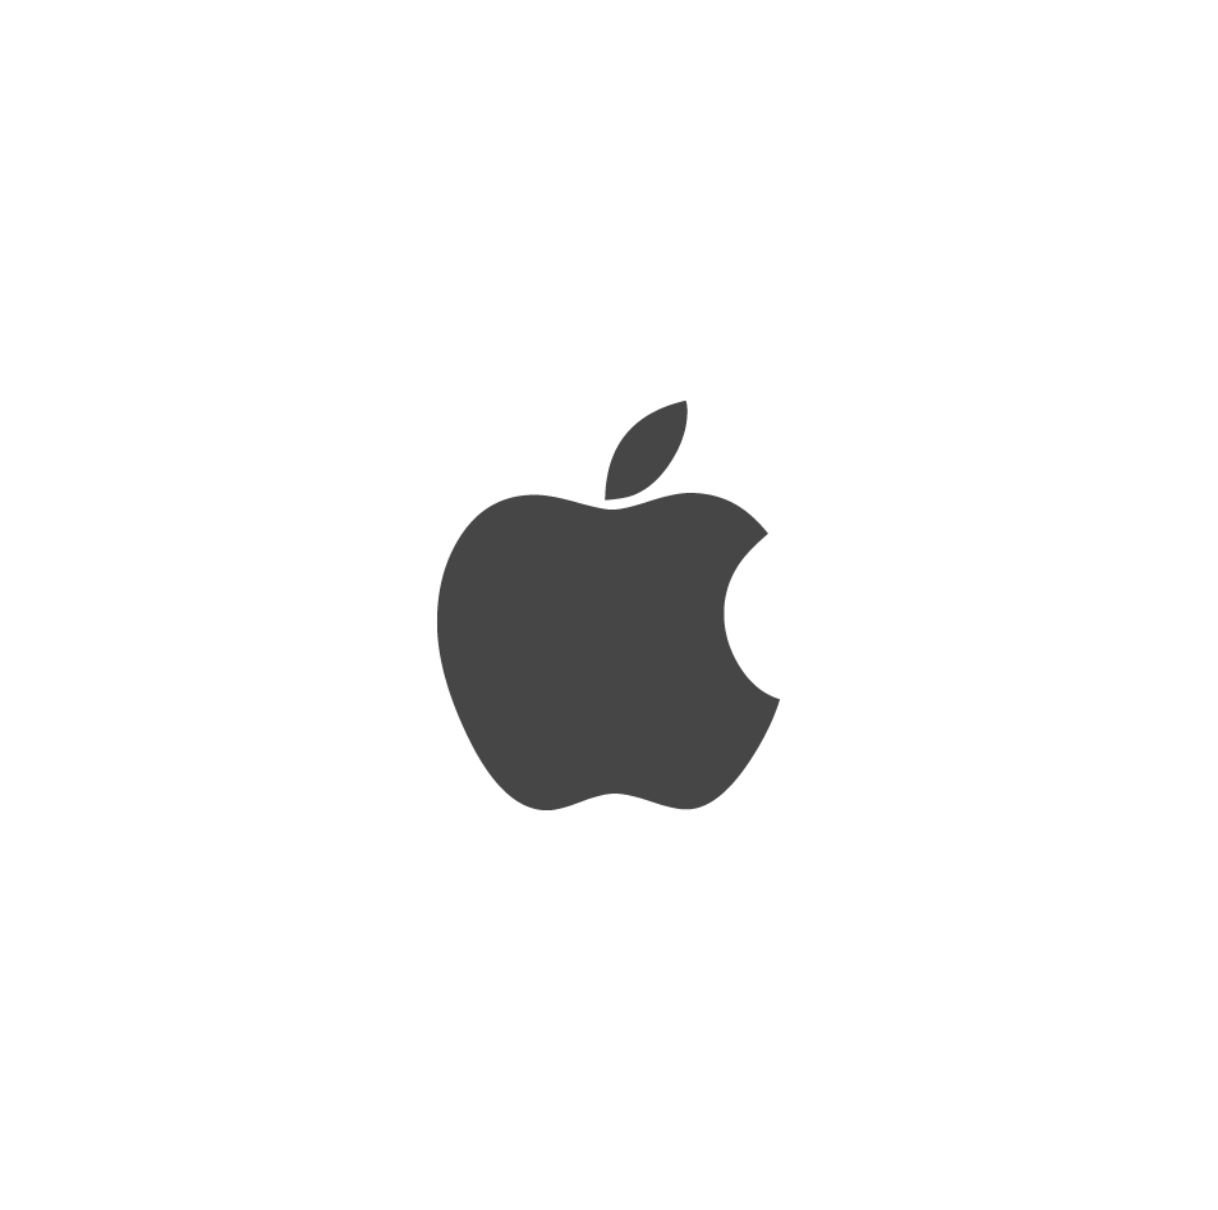 Apple logo joostbastmeijer.png